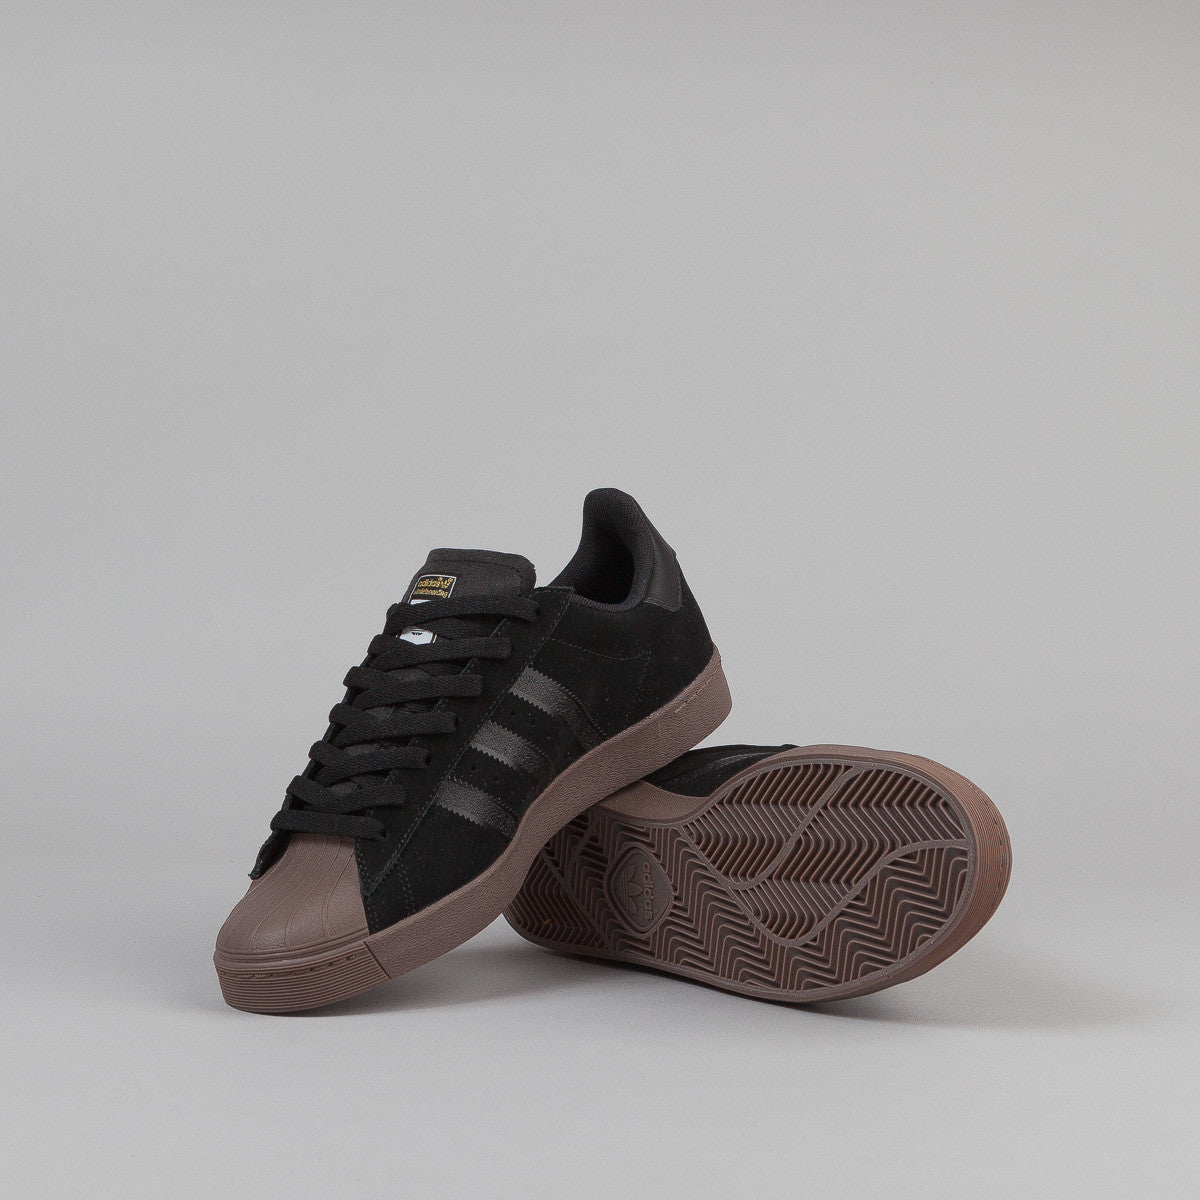 Adidas Superstar Vulc Adv Shoes - Black / Gold Metallic / Gum